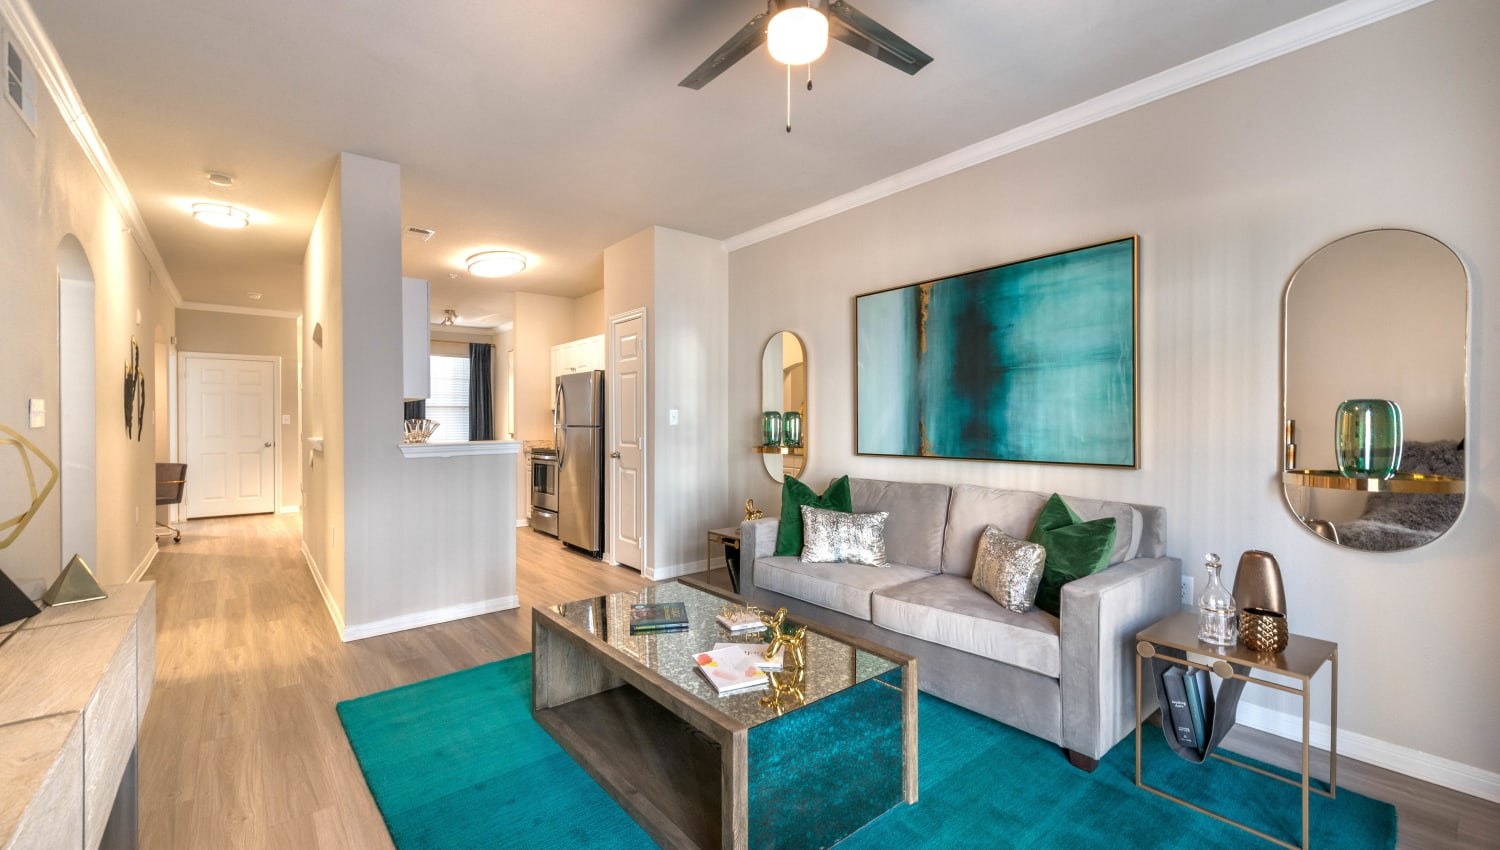 Large open-concept model home with hardwood floors and a ceiling fan in the living area atOlympus Town Center in Keller, Texas